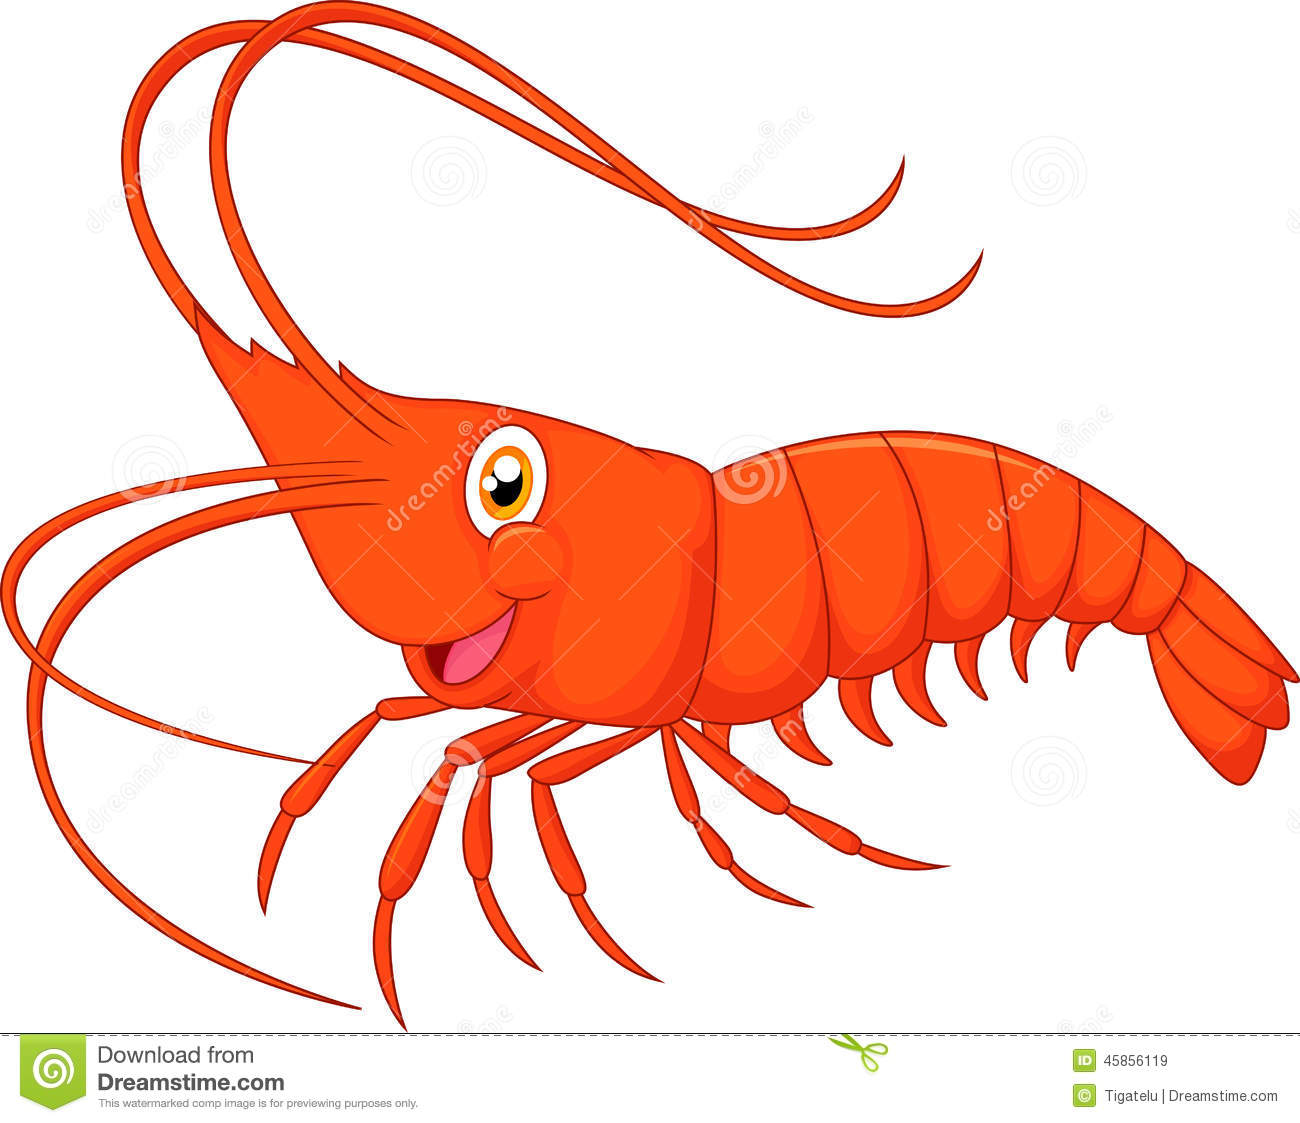 Cute Cartoon Shrimp Stock Vector Image 4-Cute Cartoon Shrimp Stock Vector Image 45856119-4